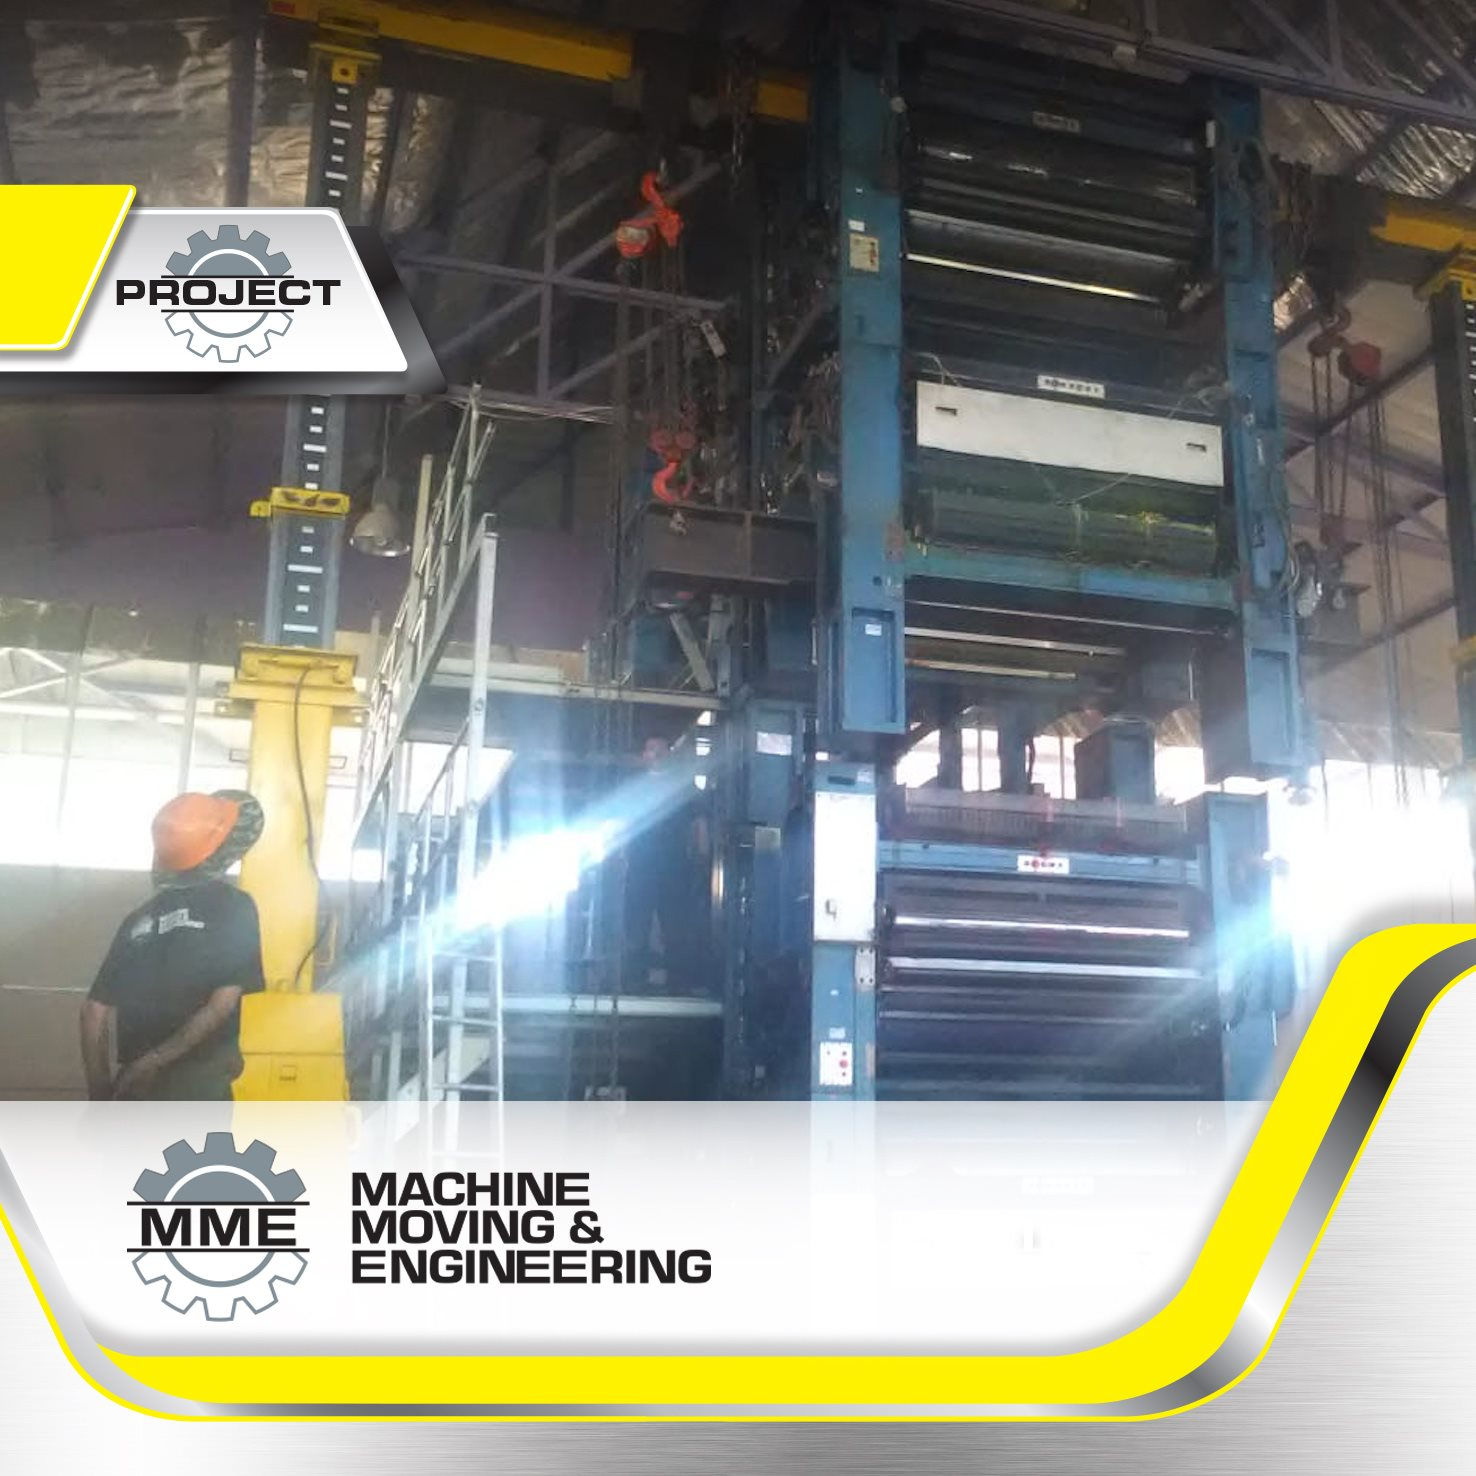 Machinery Installation Projects